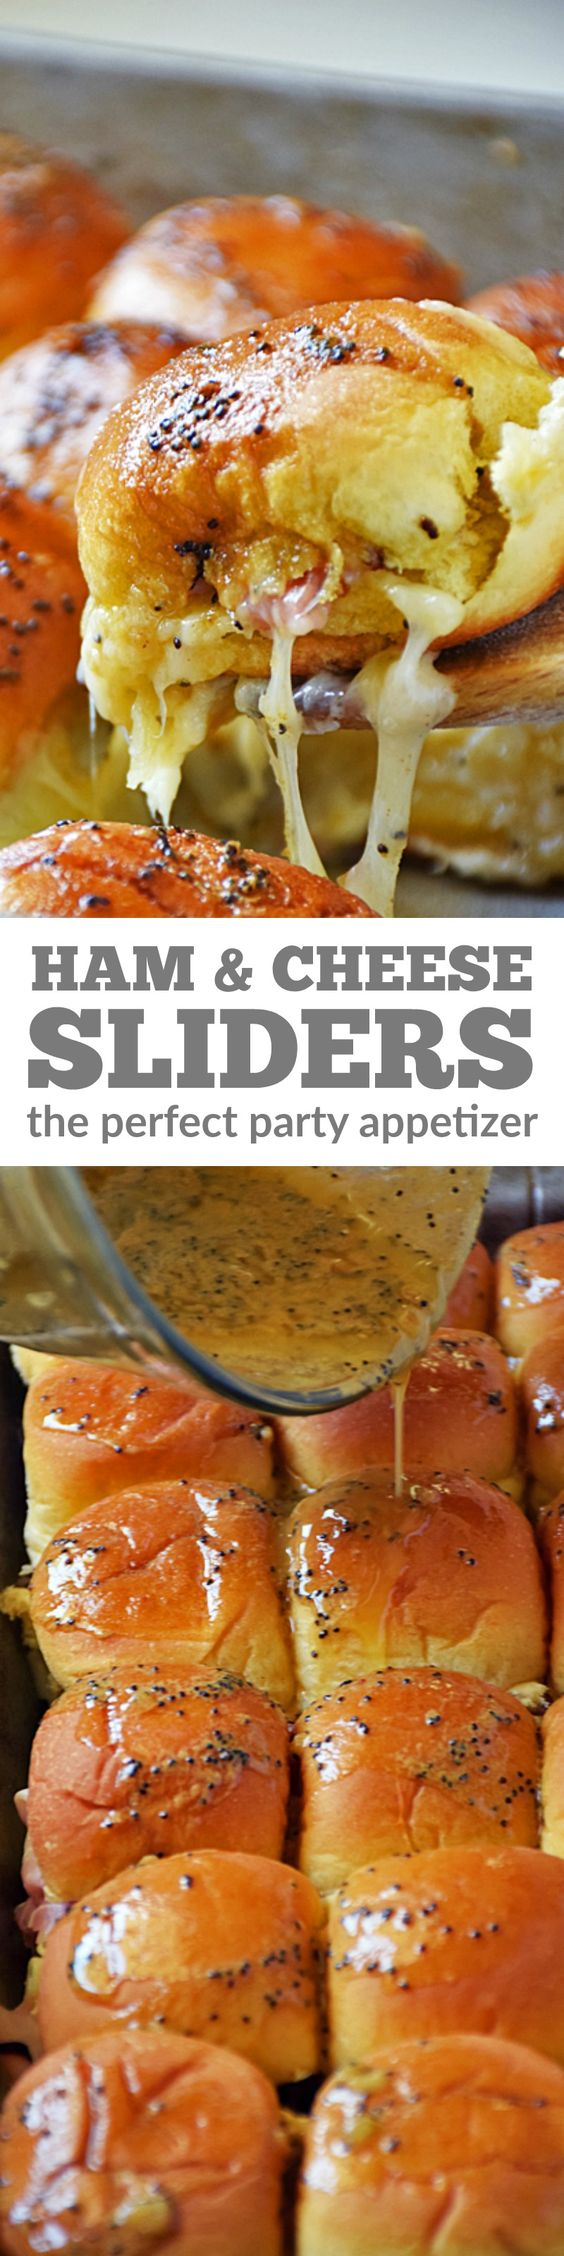 Baked Ham and Cheese Sliders | by Life Tastes Good are the perfect ...